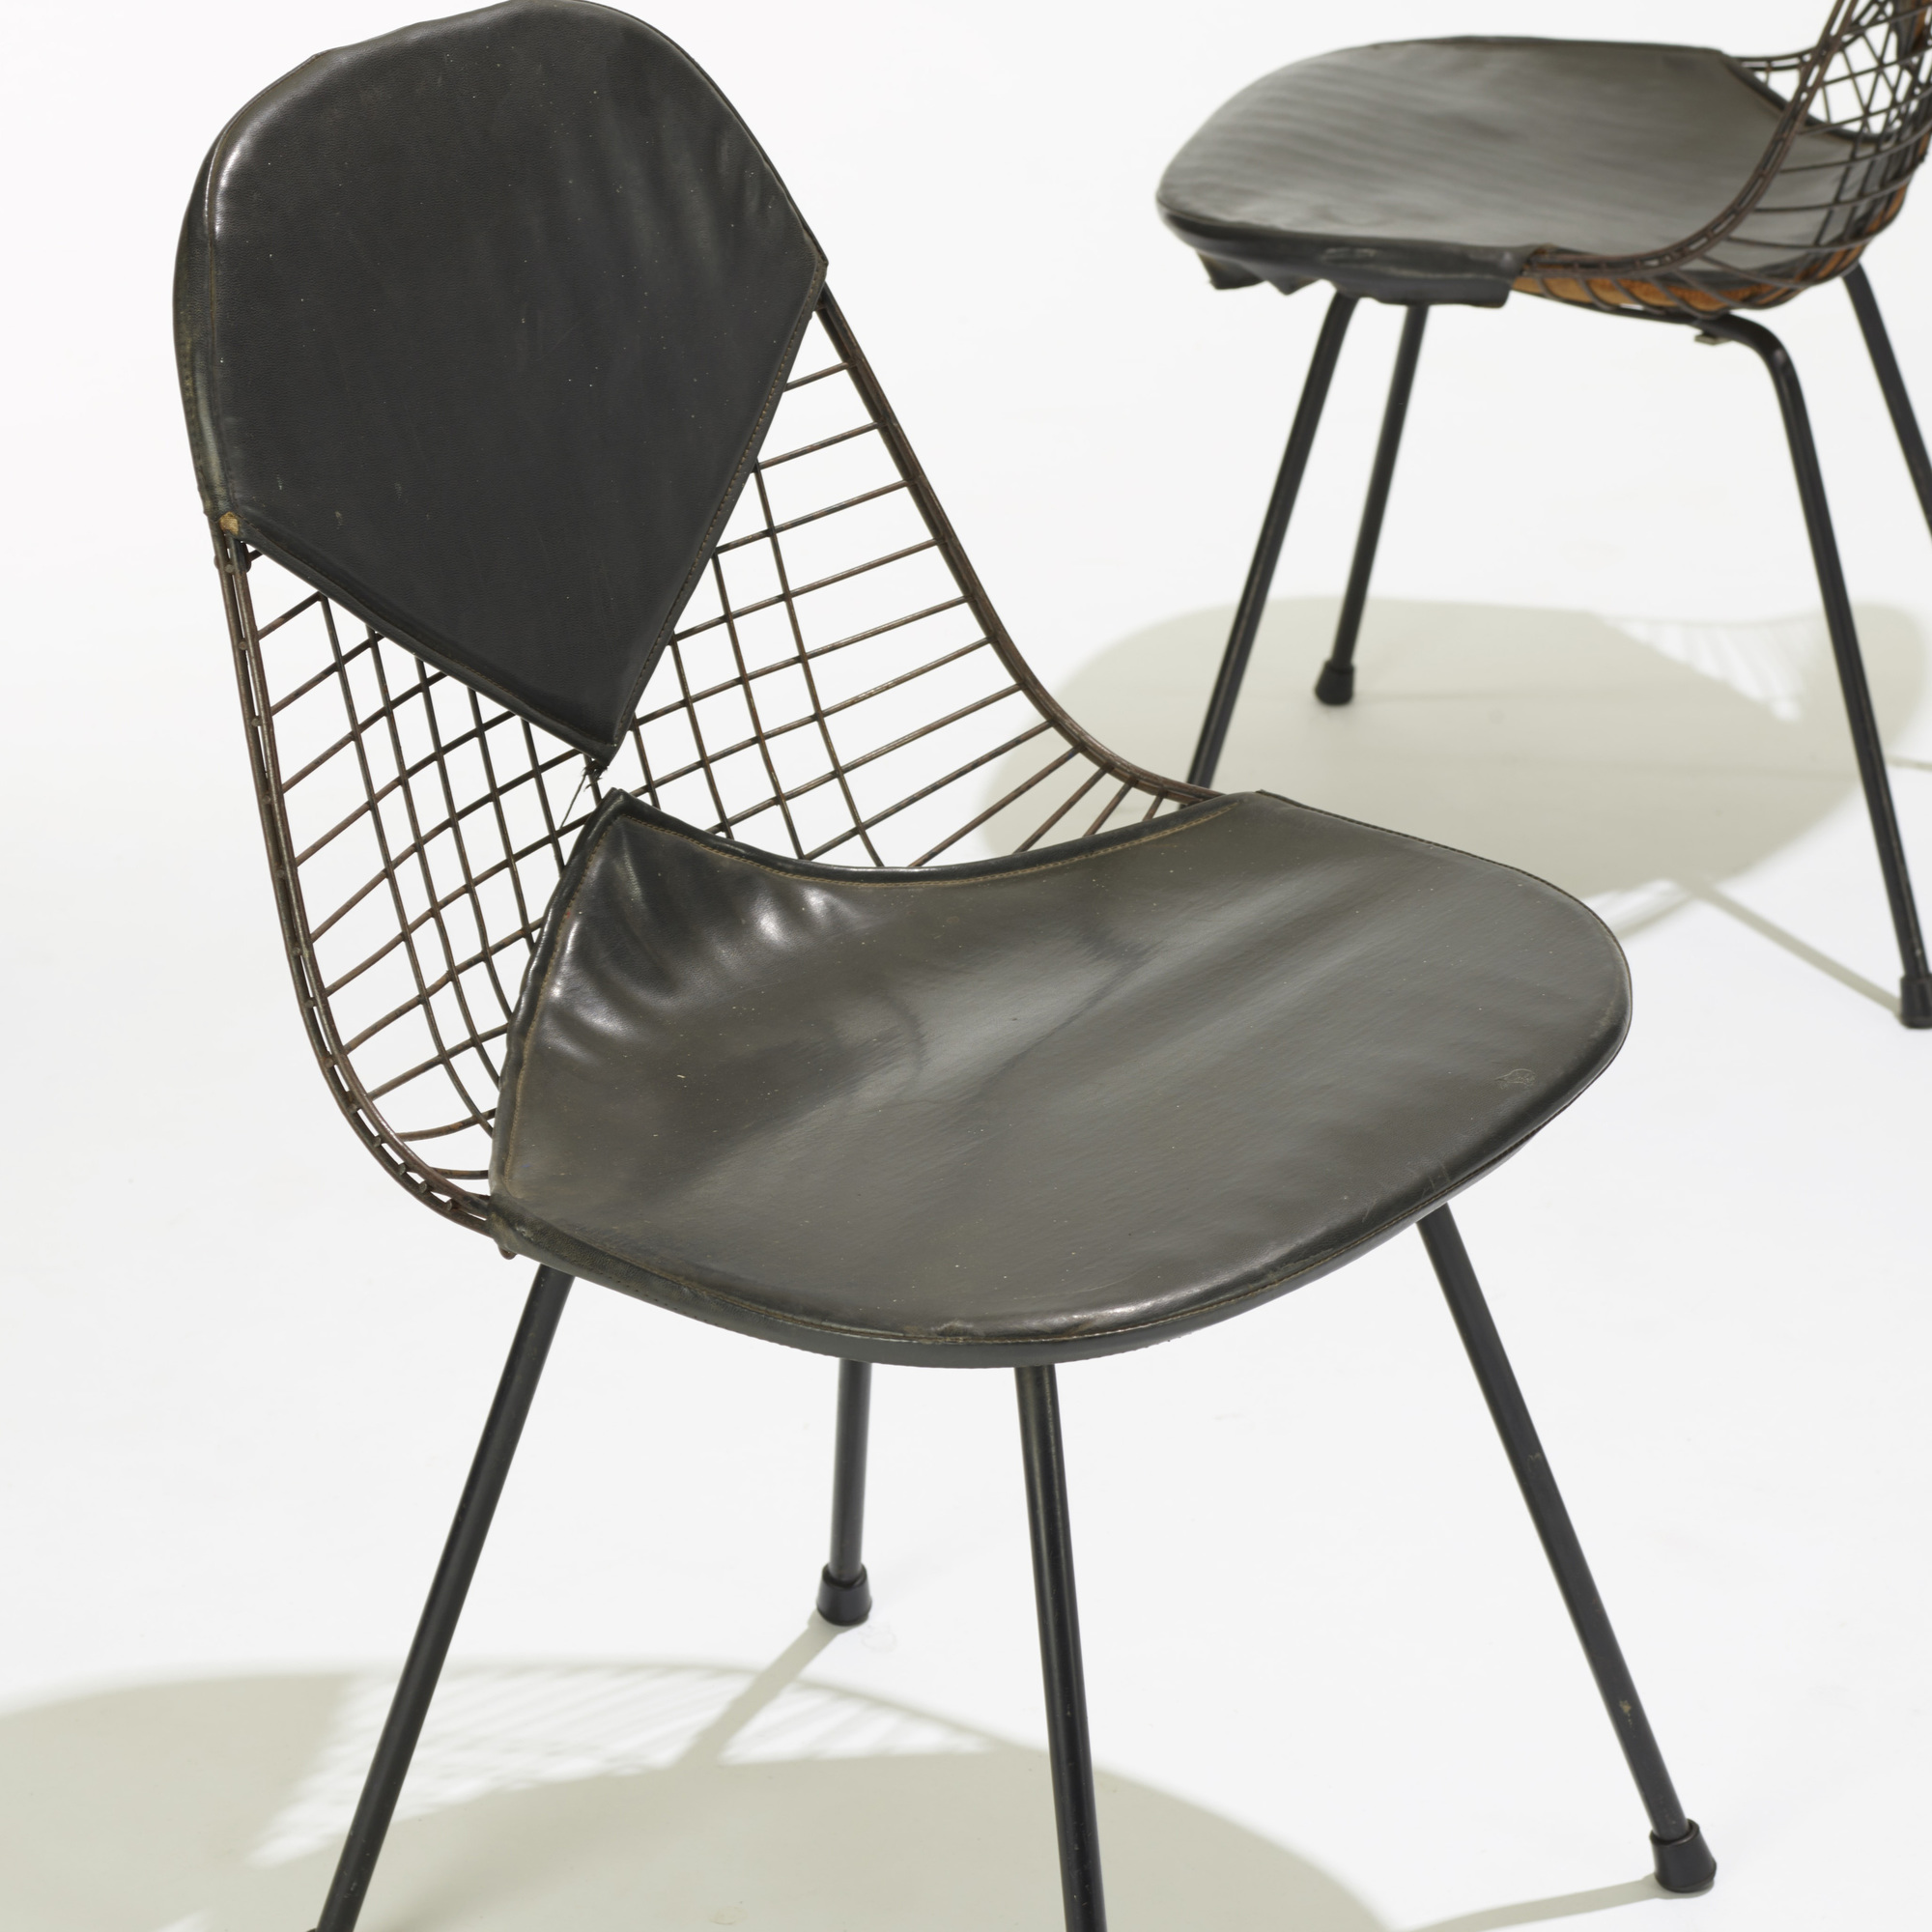 180: Charles and Ray Eames / early DKRs, set of four (3 of 4)